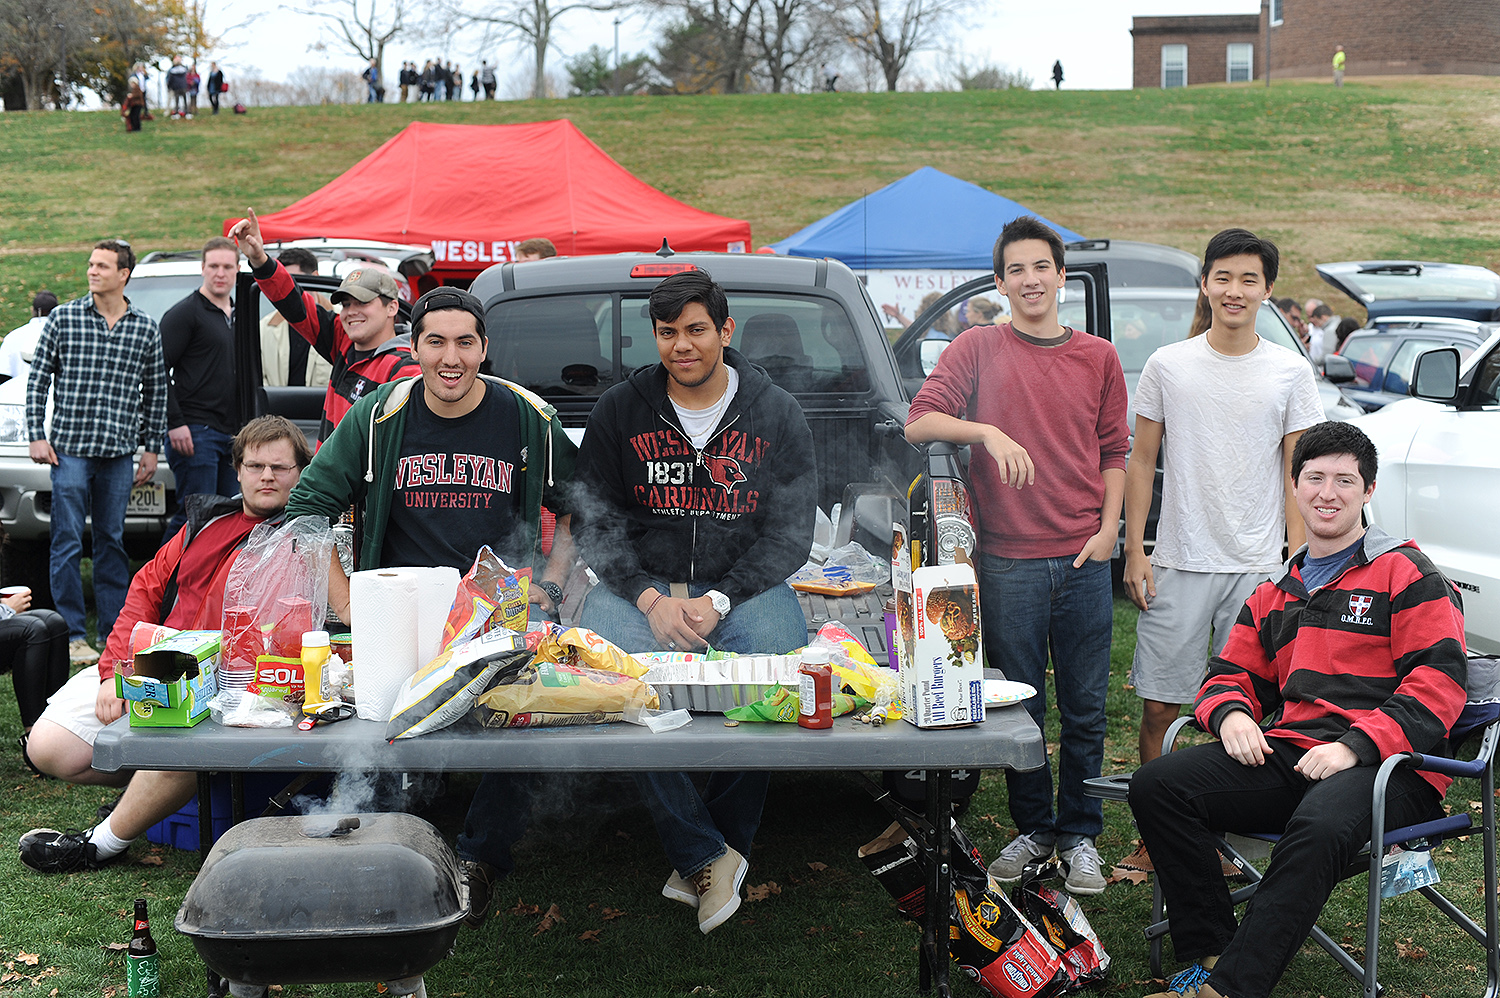 Members of the Wesleyan community, friends and family gathered on Andrus Field on Nov. 7 for tailgaiting before the Homecoming football game against rival Wlliams College. (Photo by Olivia Drake MALS '08)